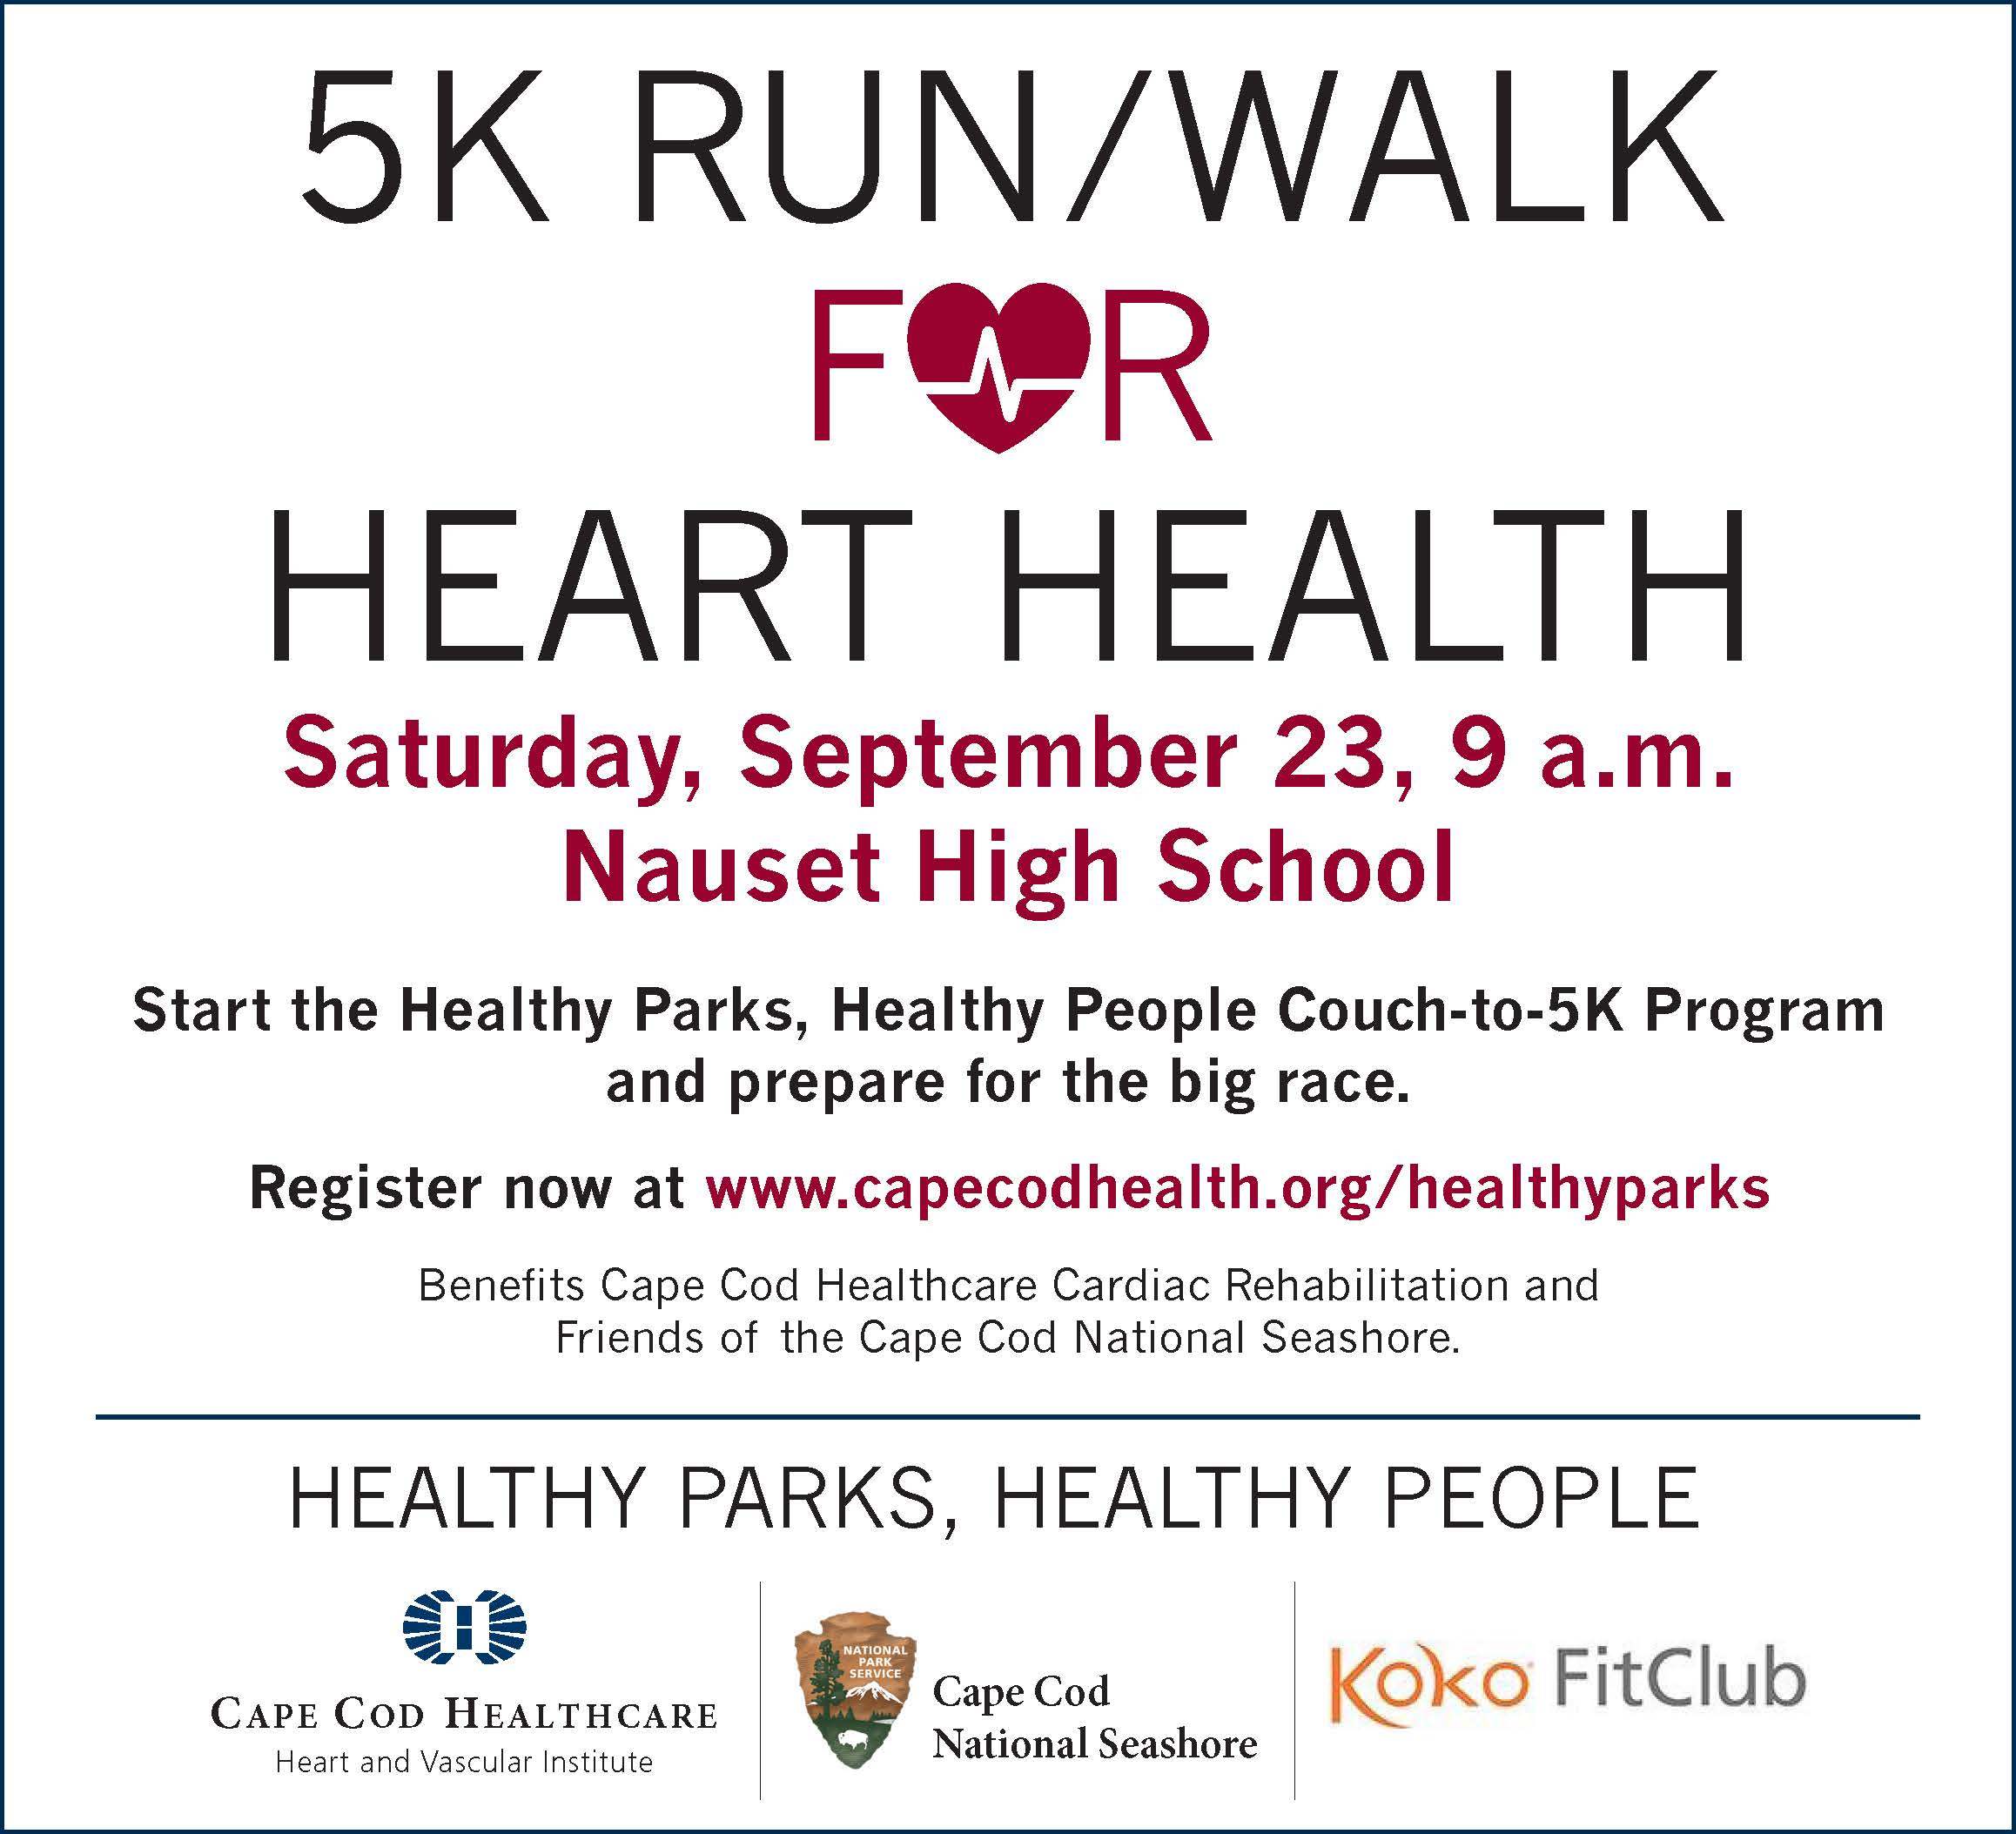 A white logo for a 5K Run/Walk For heart health. Spnsor Logos For Cape Cod national seashore, Cape Cod Healthcare, and Koko Fitness.